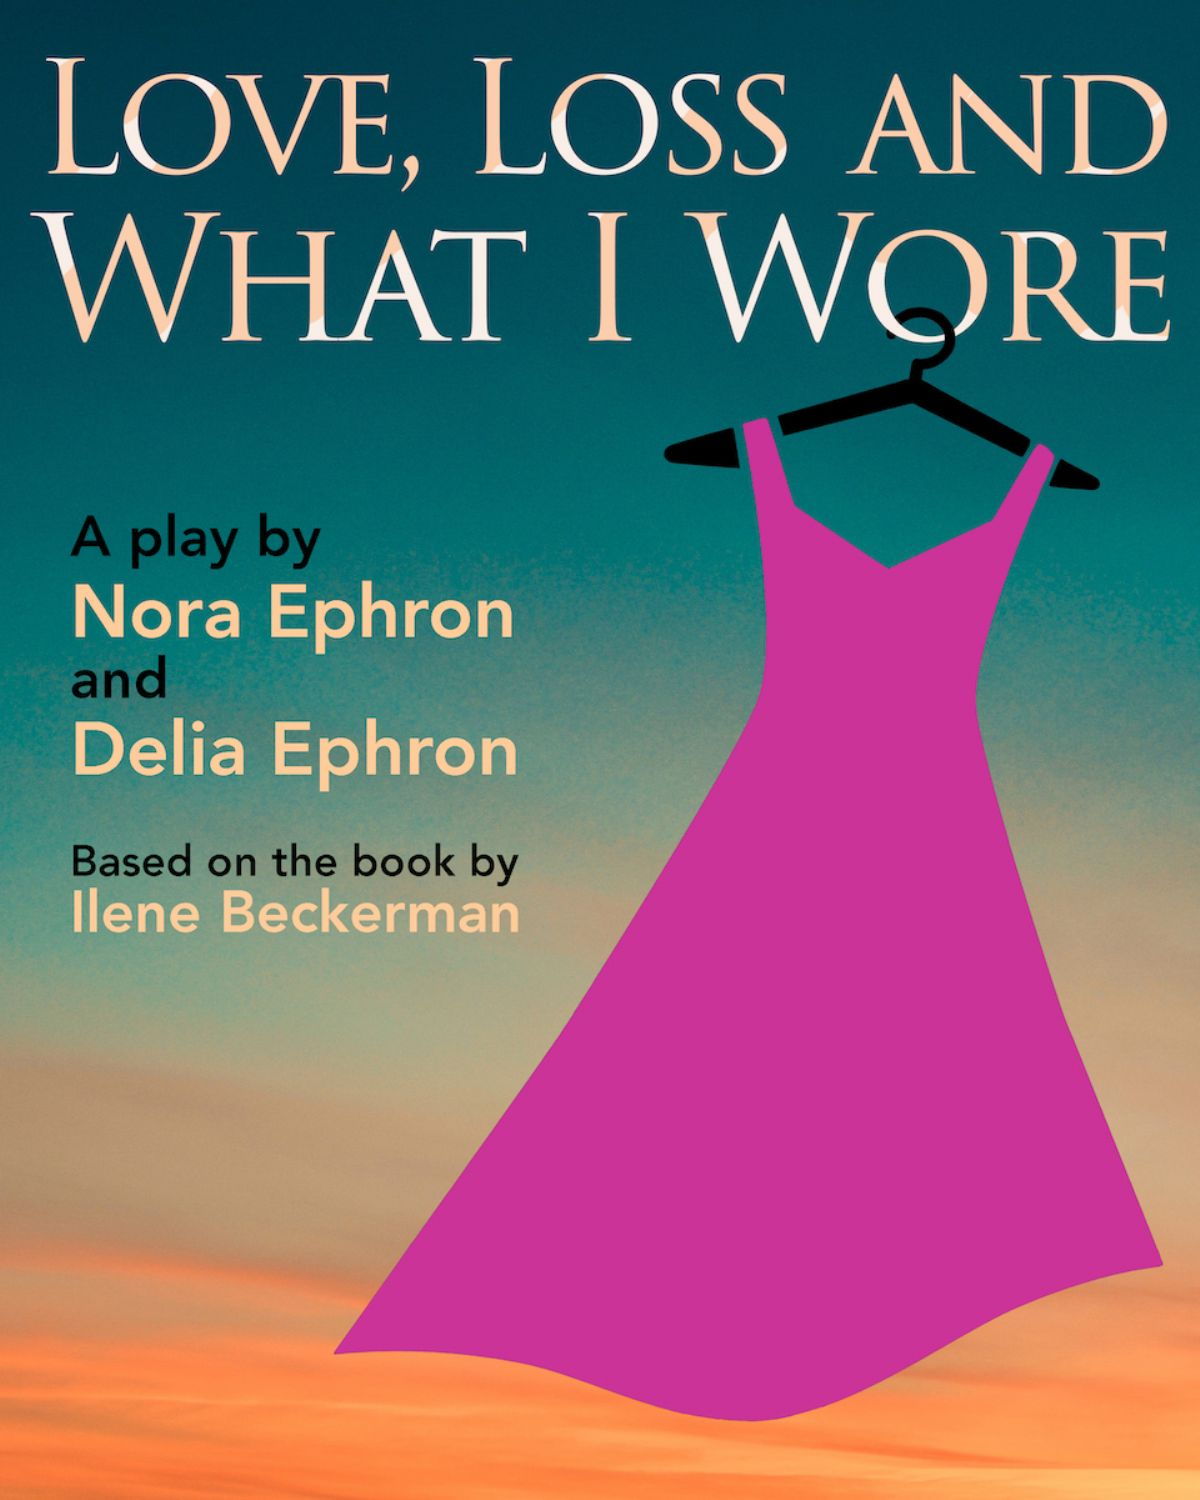 Love, Loss, and What I Wore by Nora and Delia Ephron: A Virtual Streaming Event